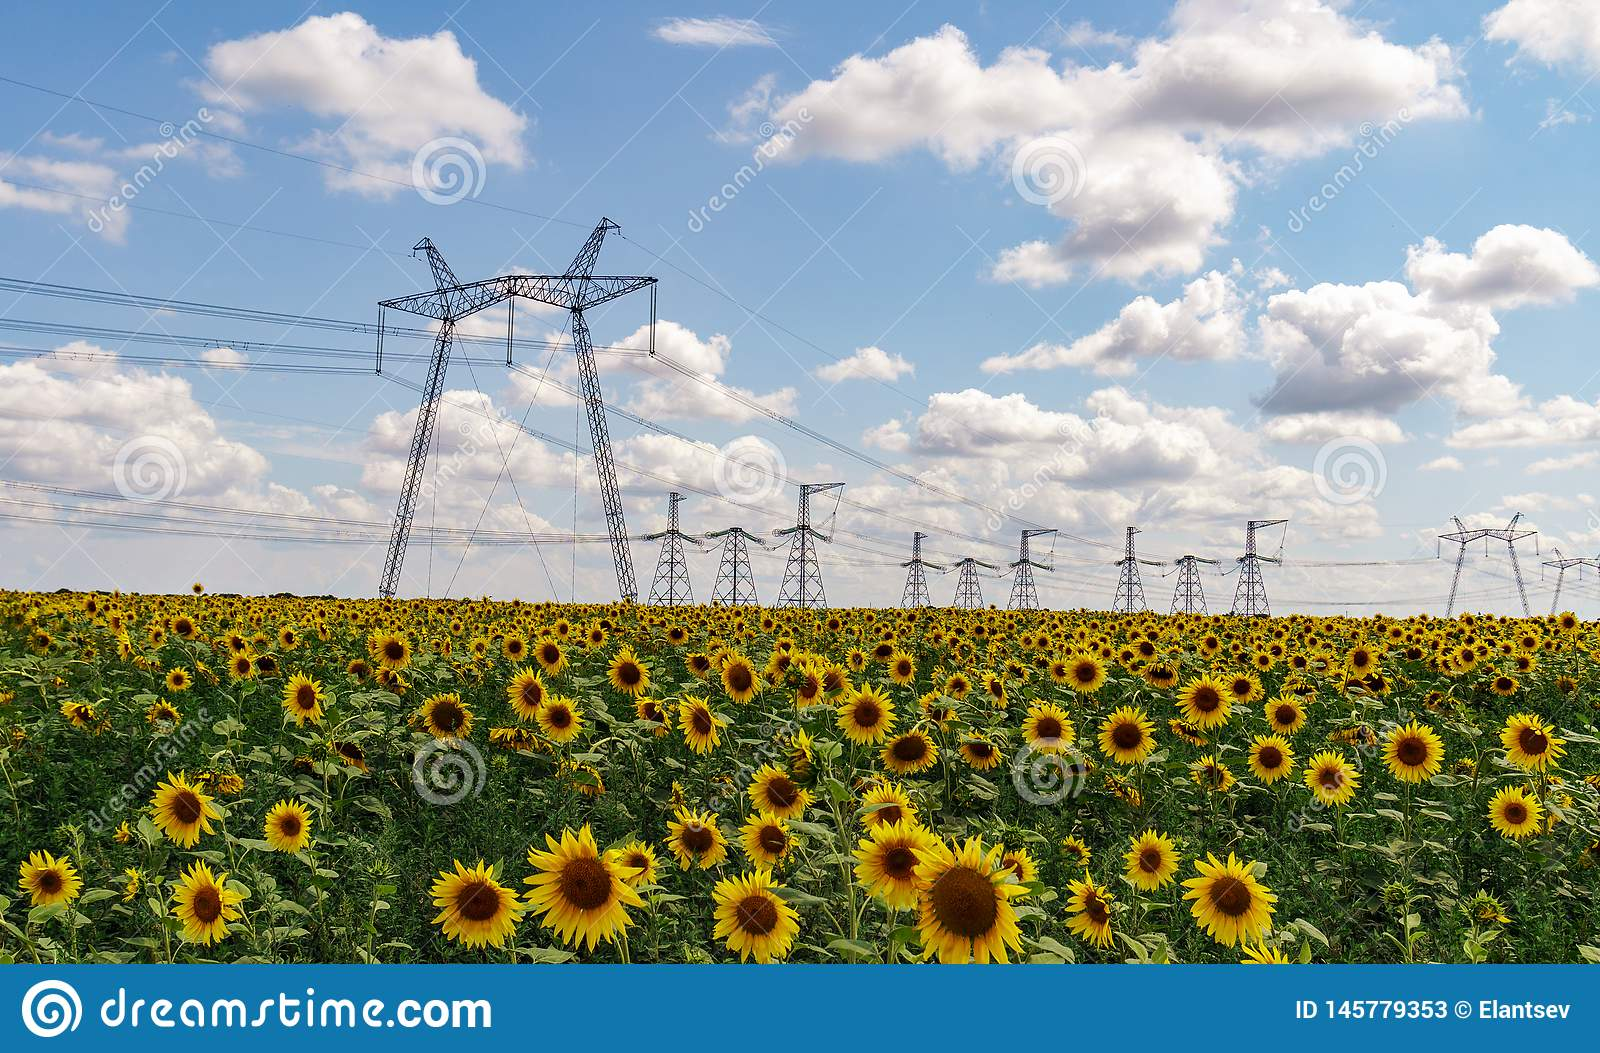 High power electricity poles in urban area. Energy supply, distribution of energy, transmitting energy, energy transmission, high